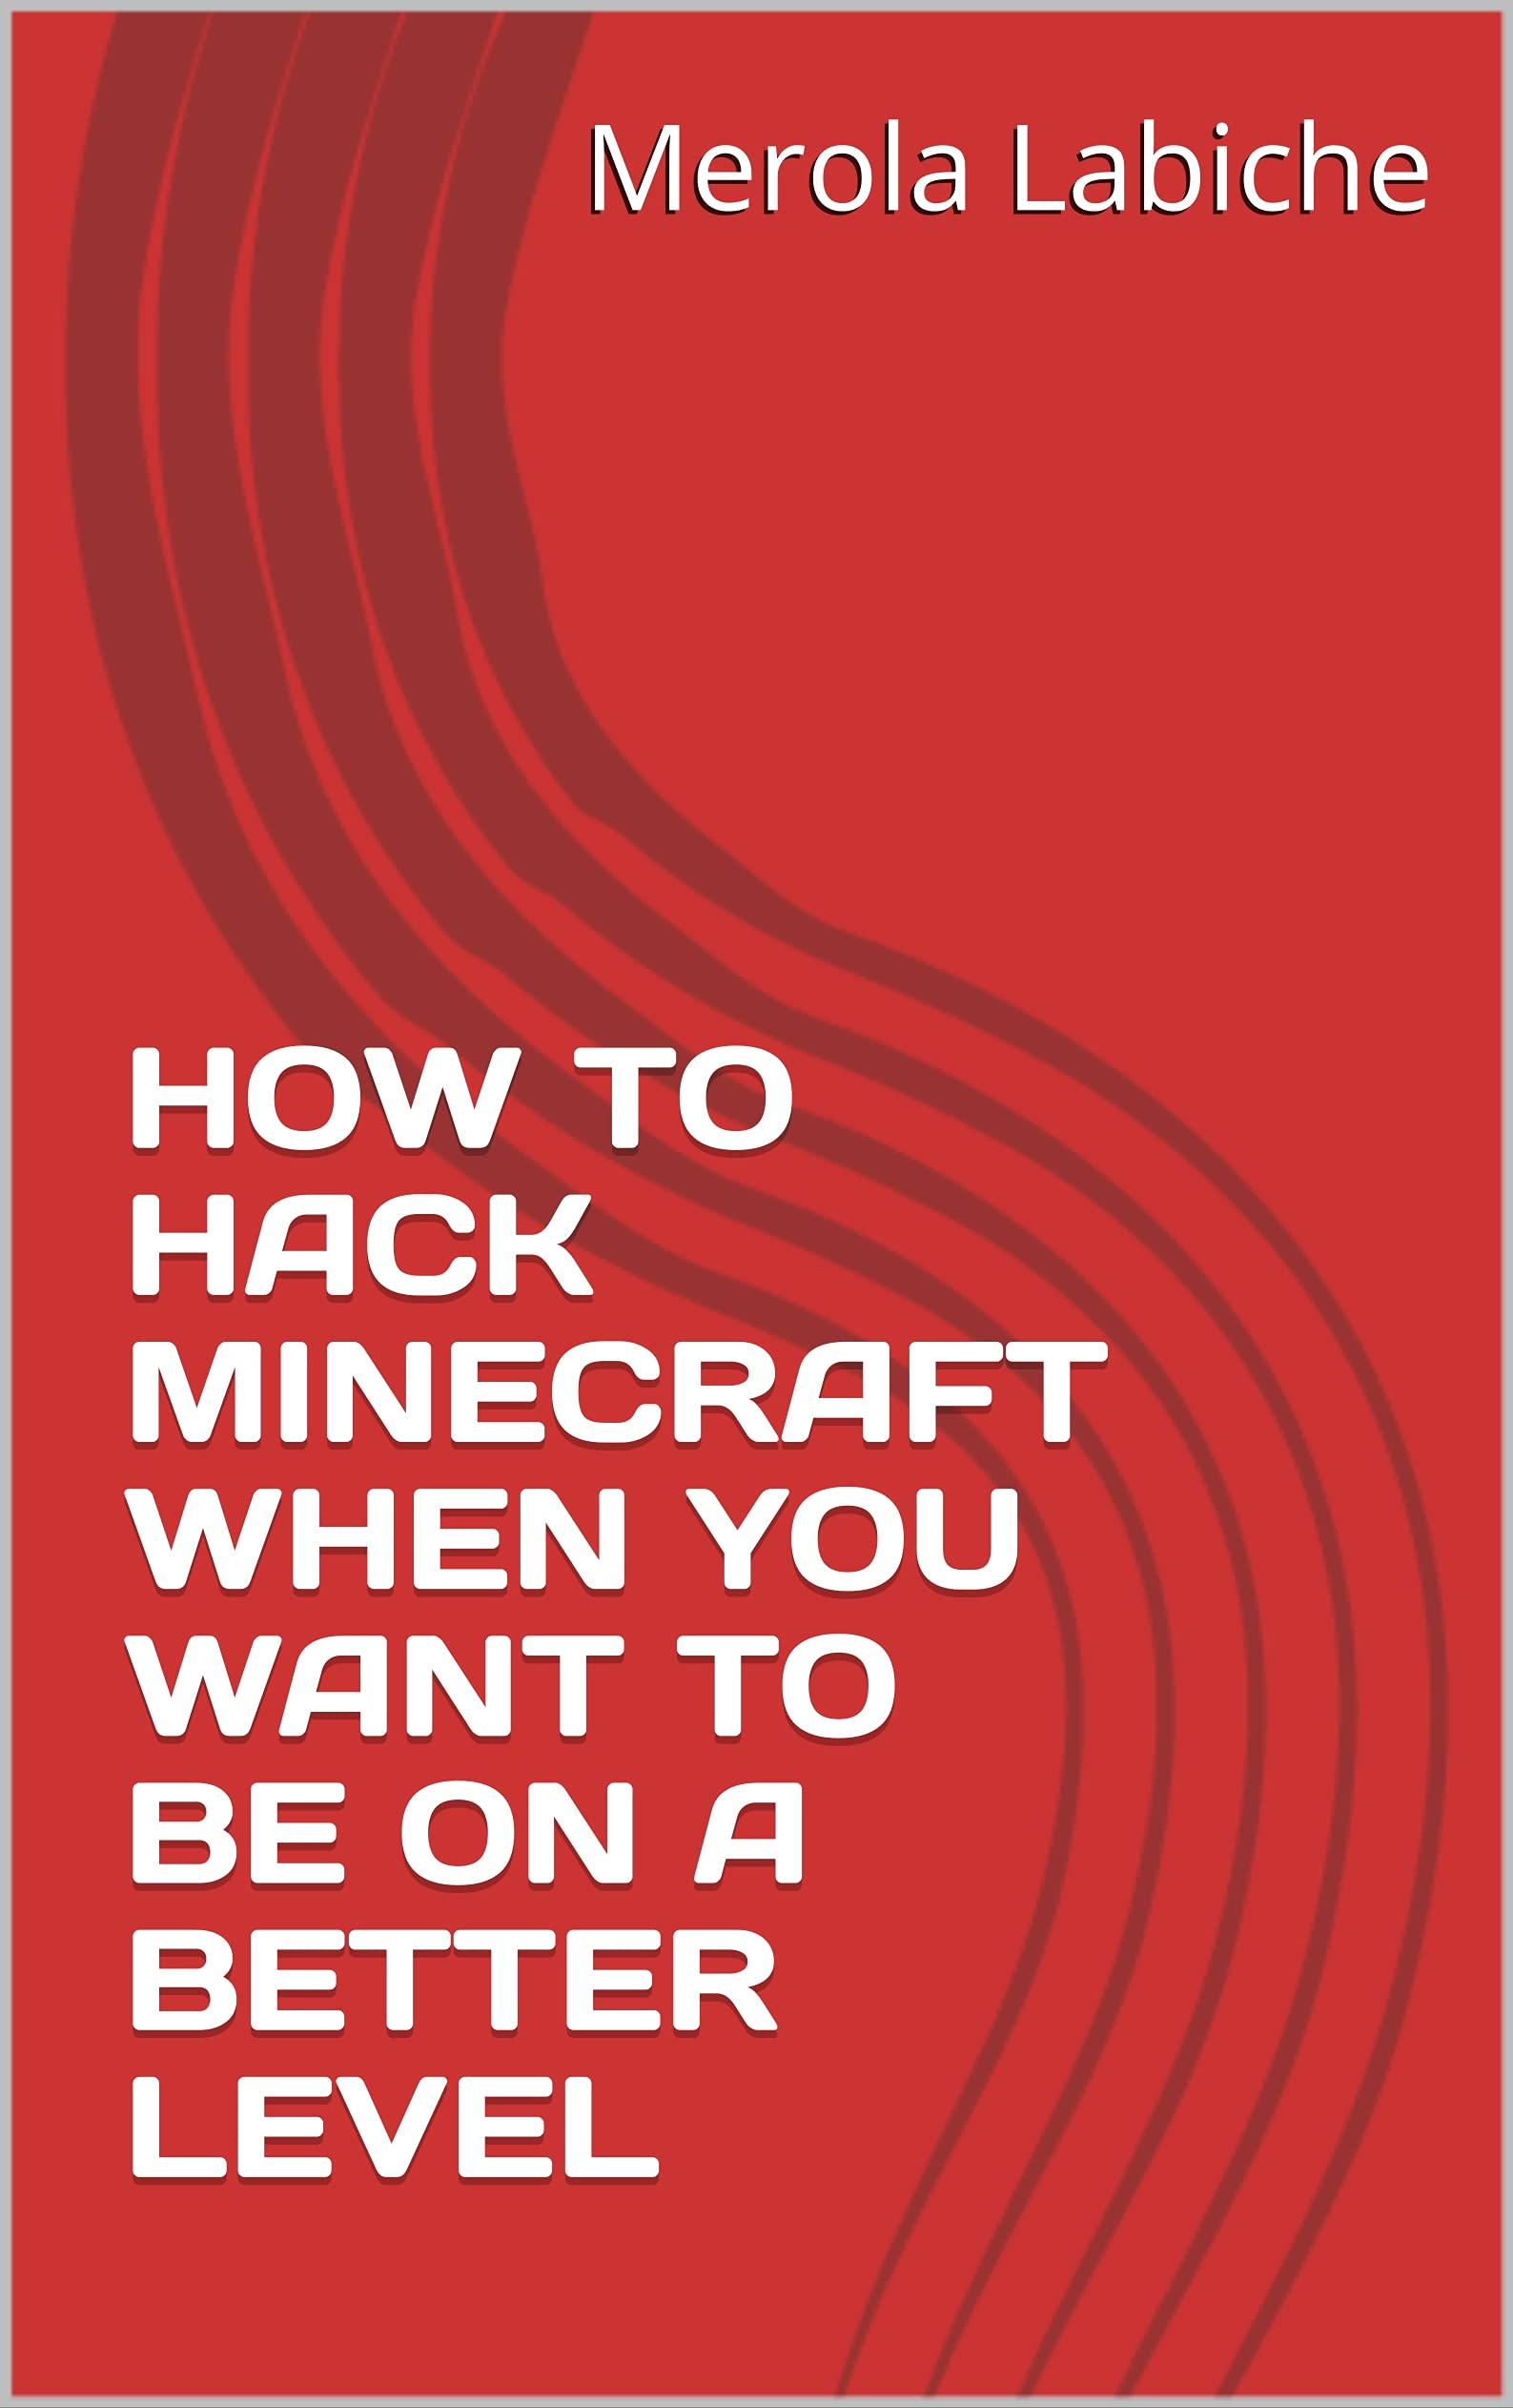 HOW TO HACK MINECRAFT WHEN YOU WANT TO BE ON A BETTER LEVEL